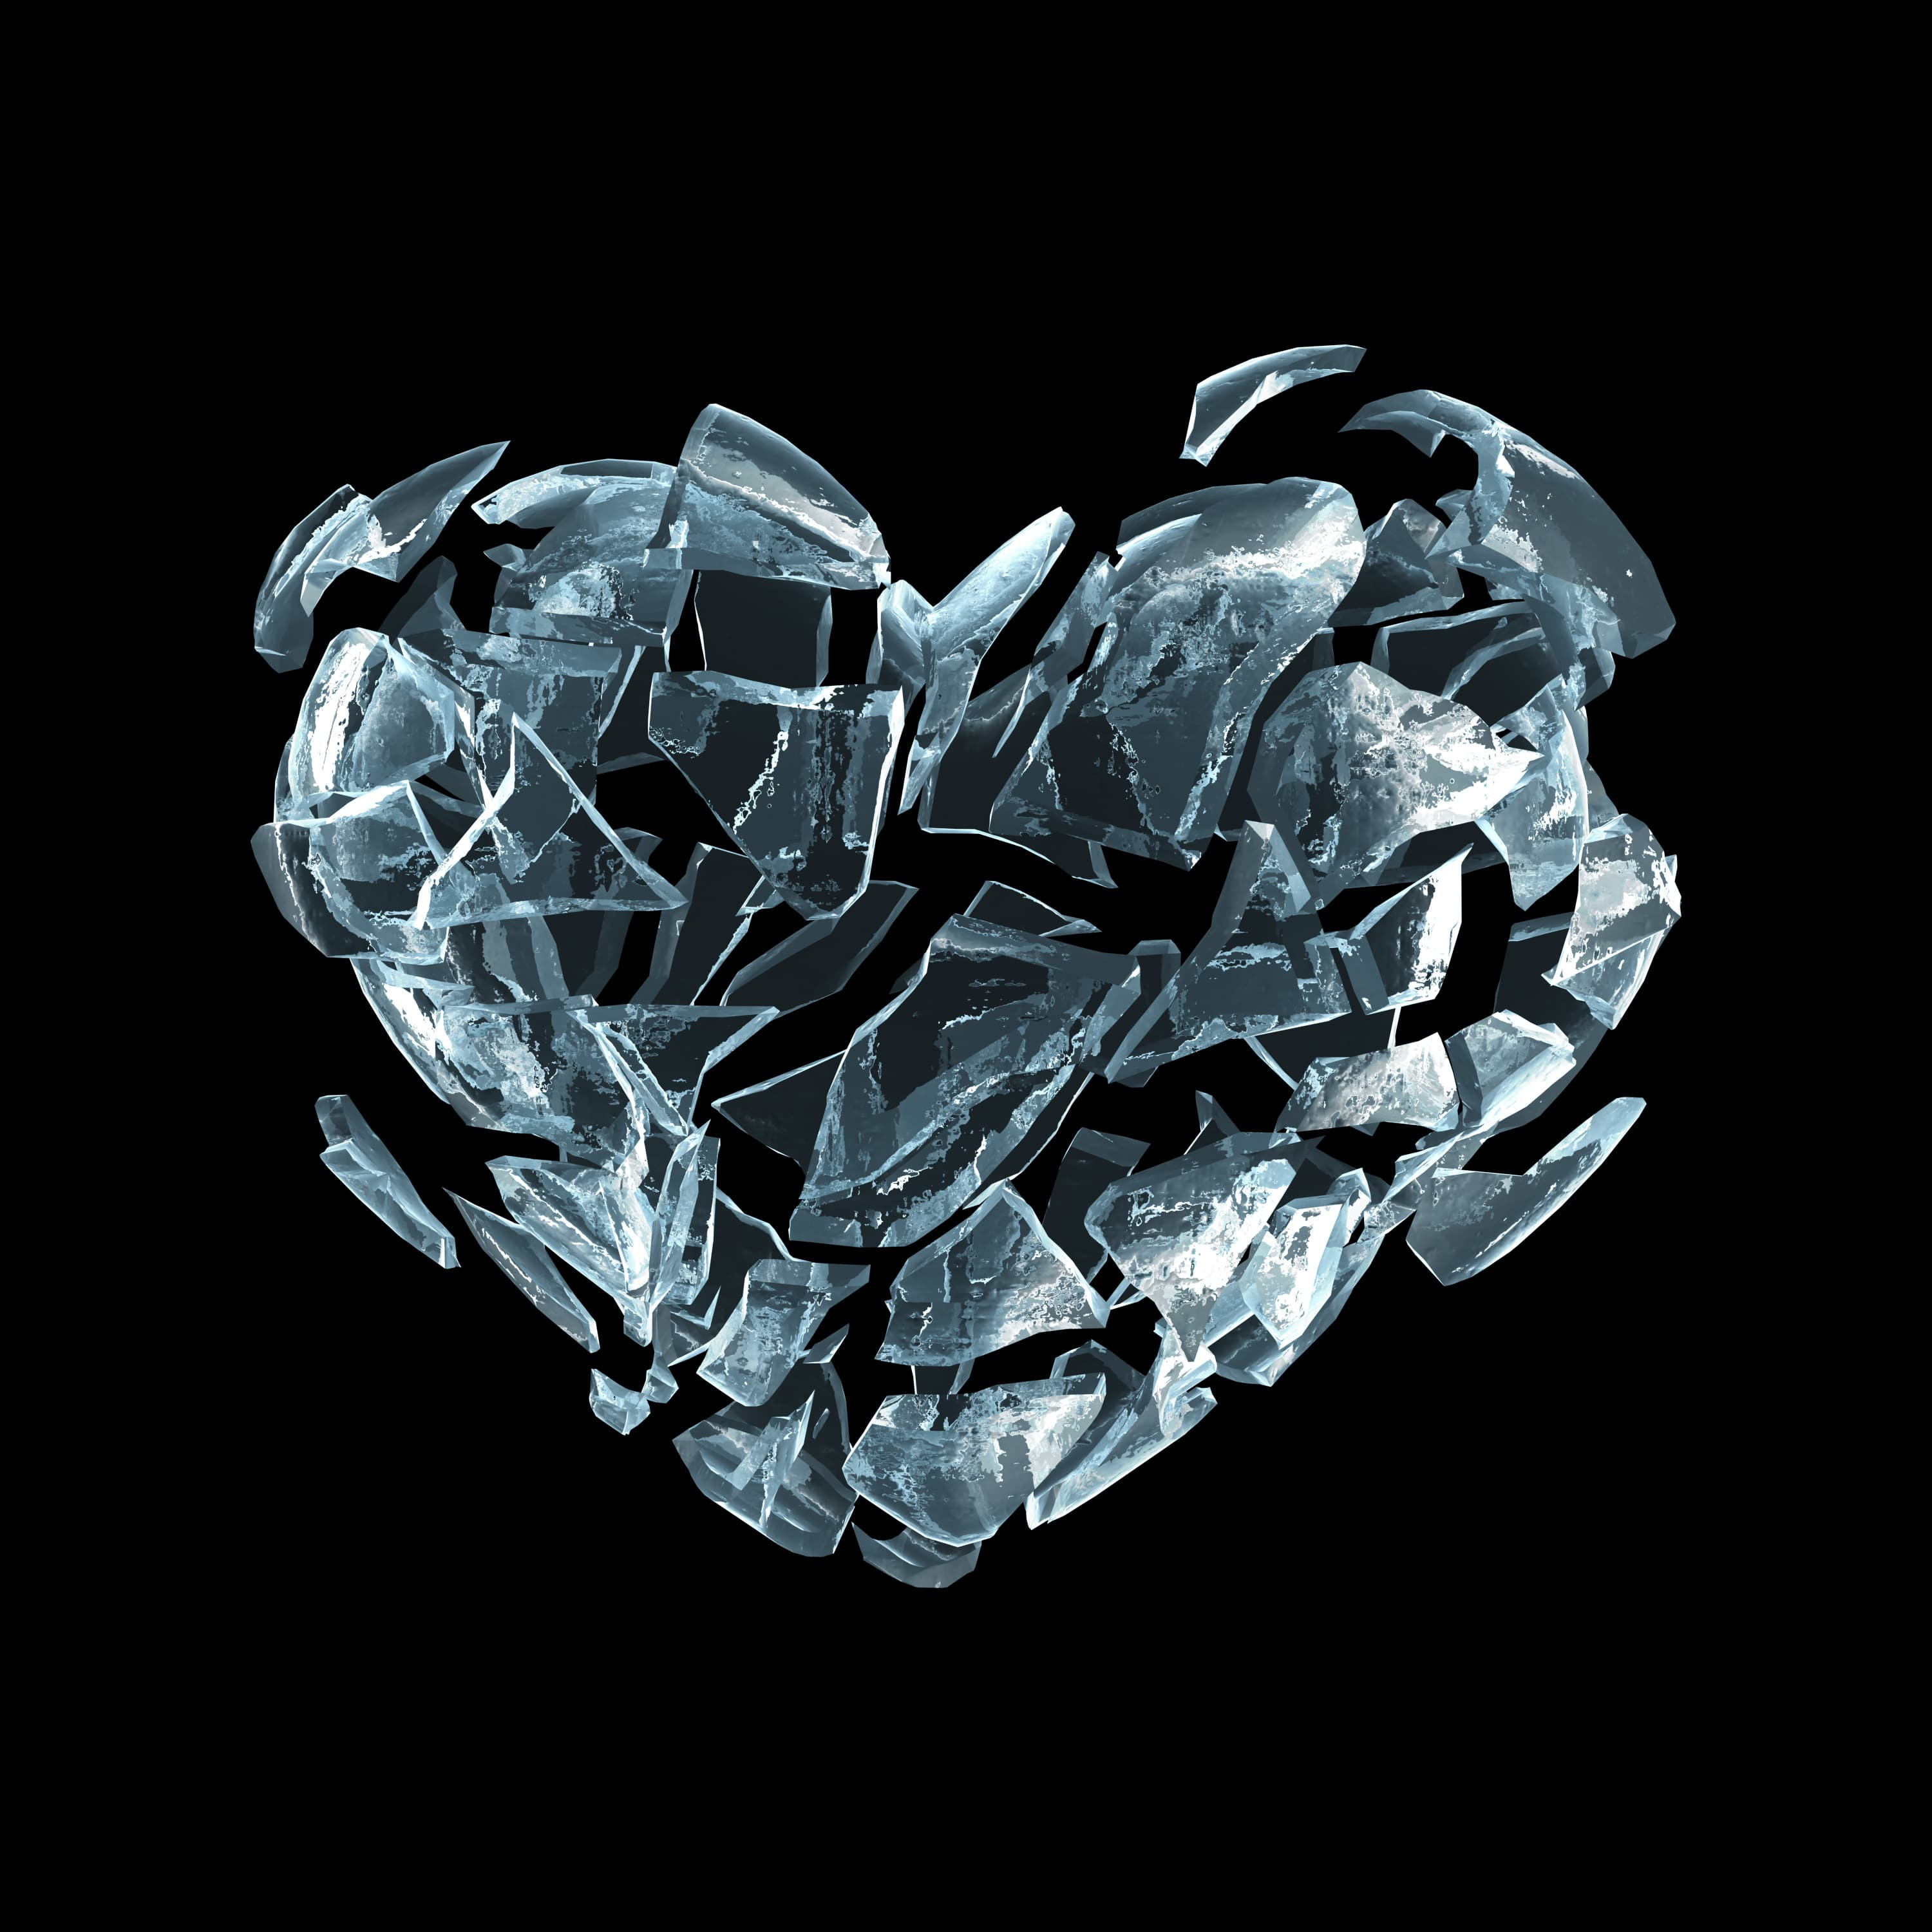 Broken ice heart